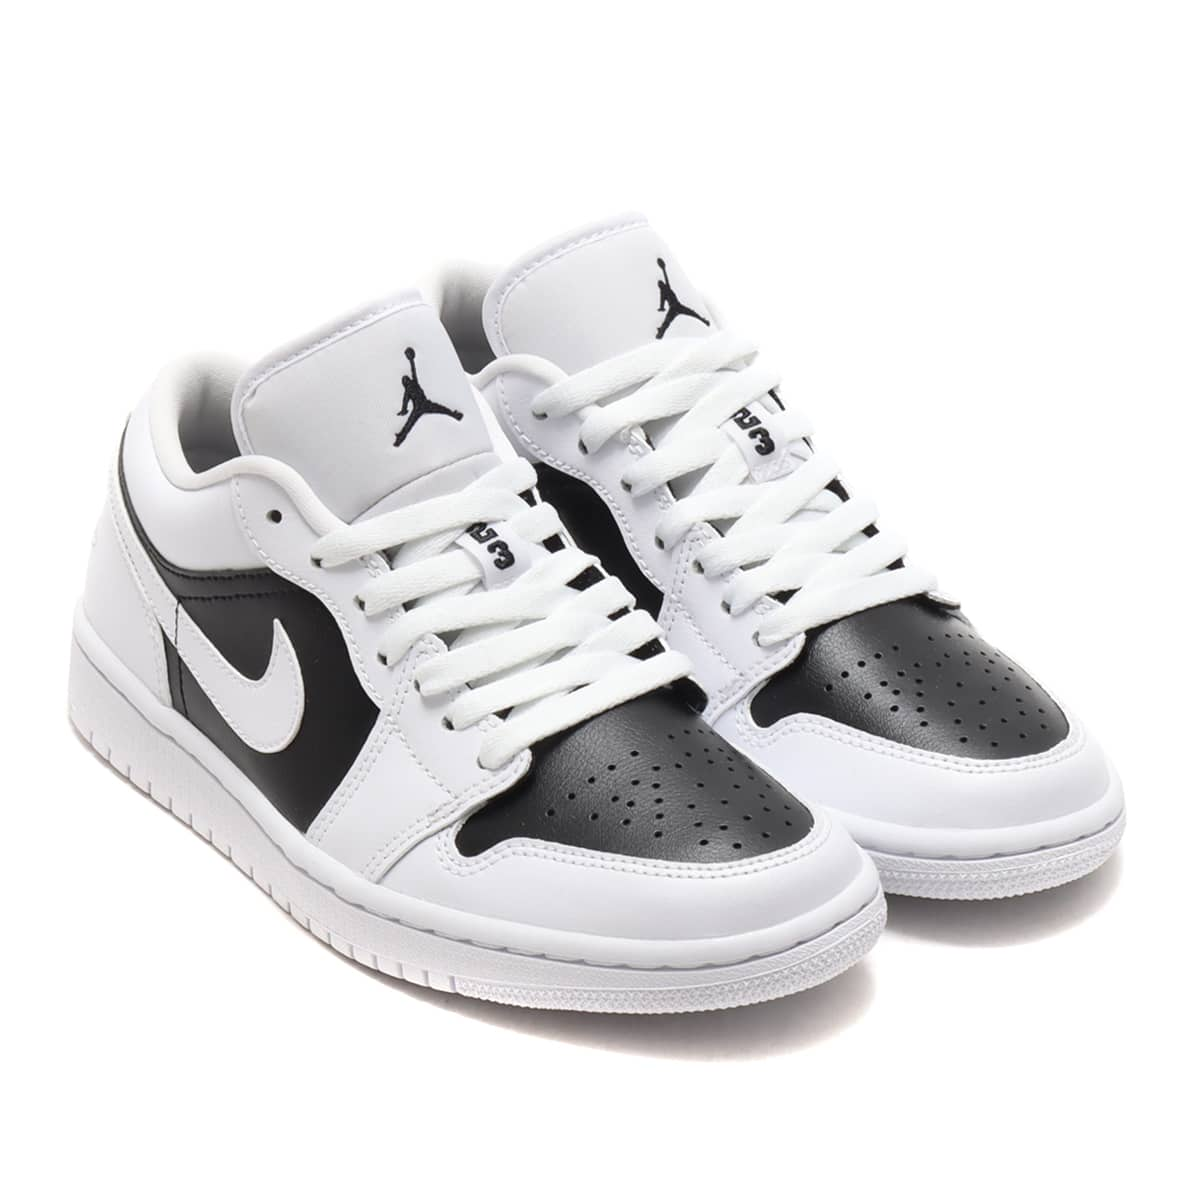 JORDAN BRAND WMNS AIR JORDAN 1 LOW WHITE/WHITE-BLACK 21SU-I_photo_large